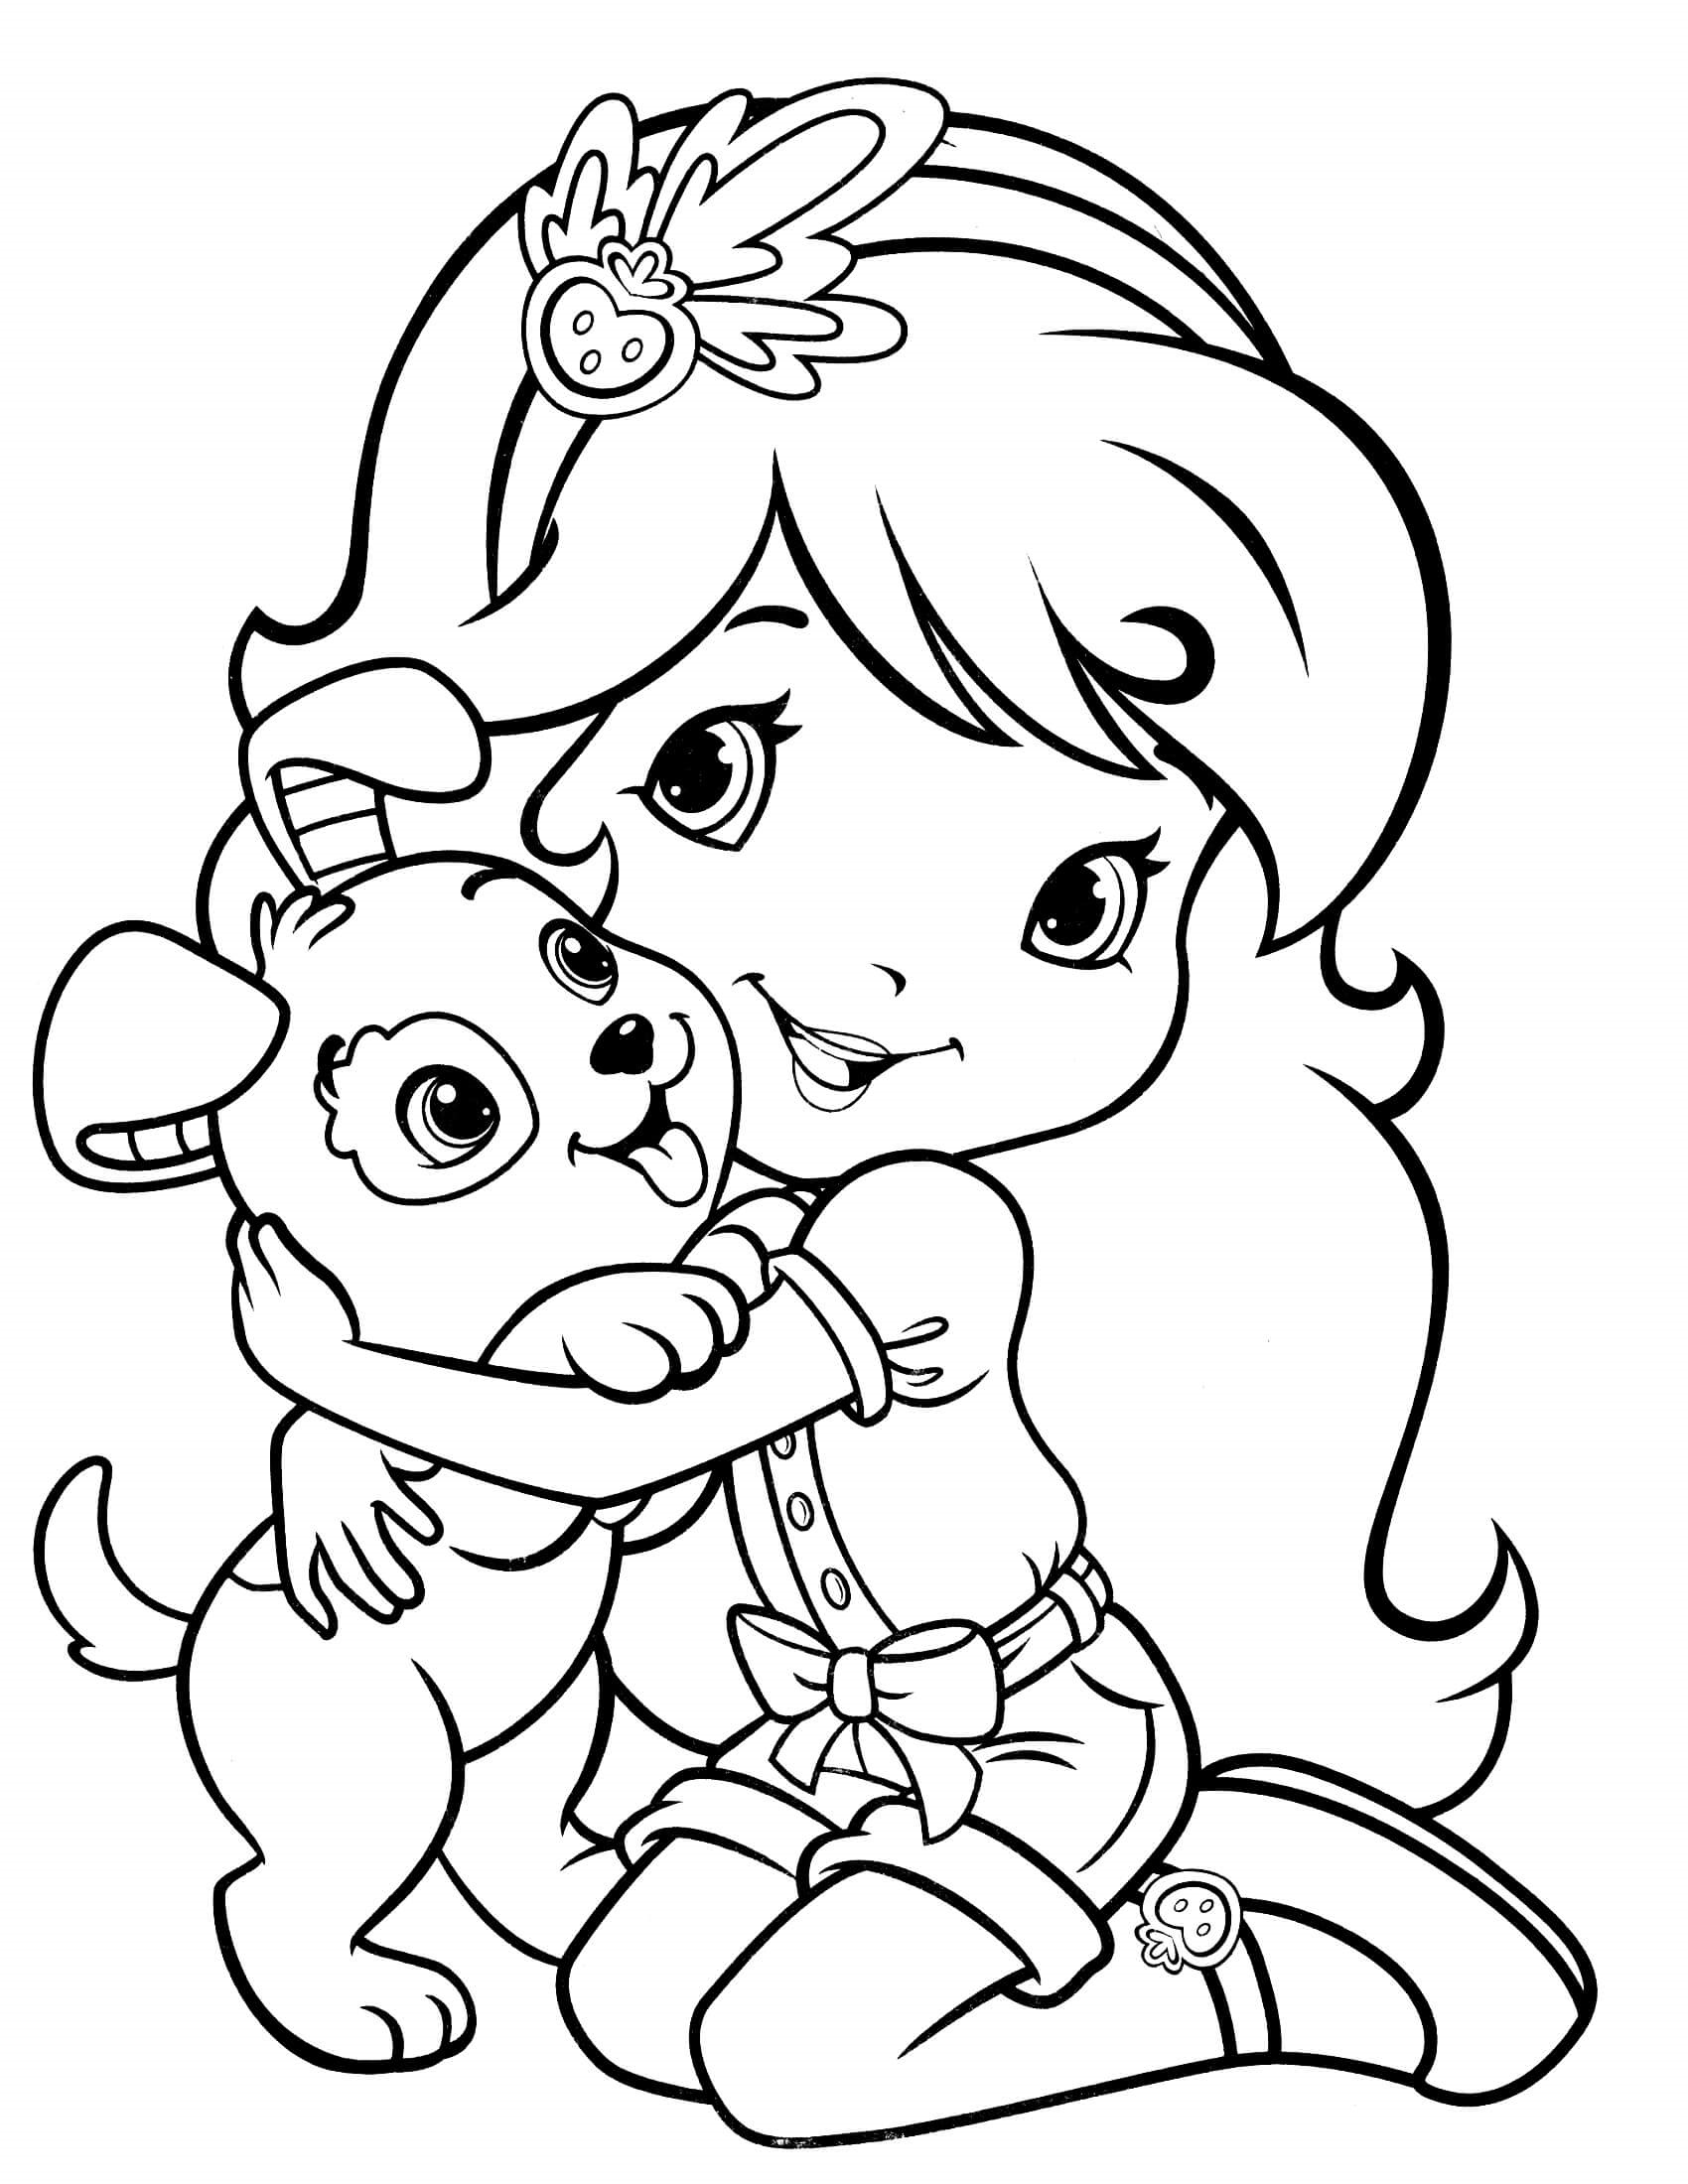 coloring pages for teens printable coloring pages for teens free printable coloring pages for printable pages coloring teens